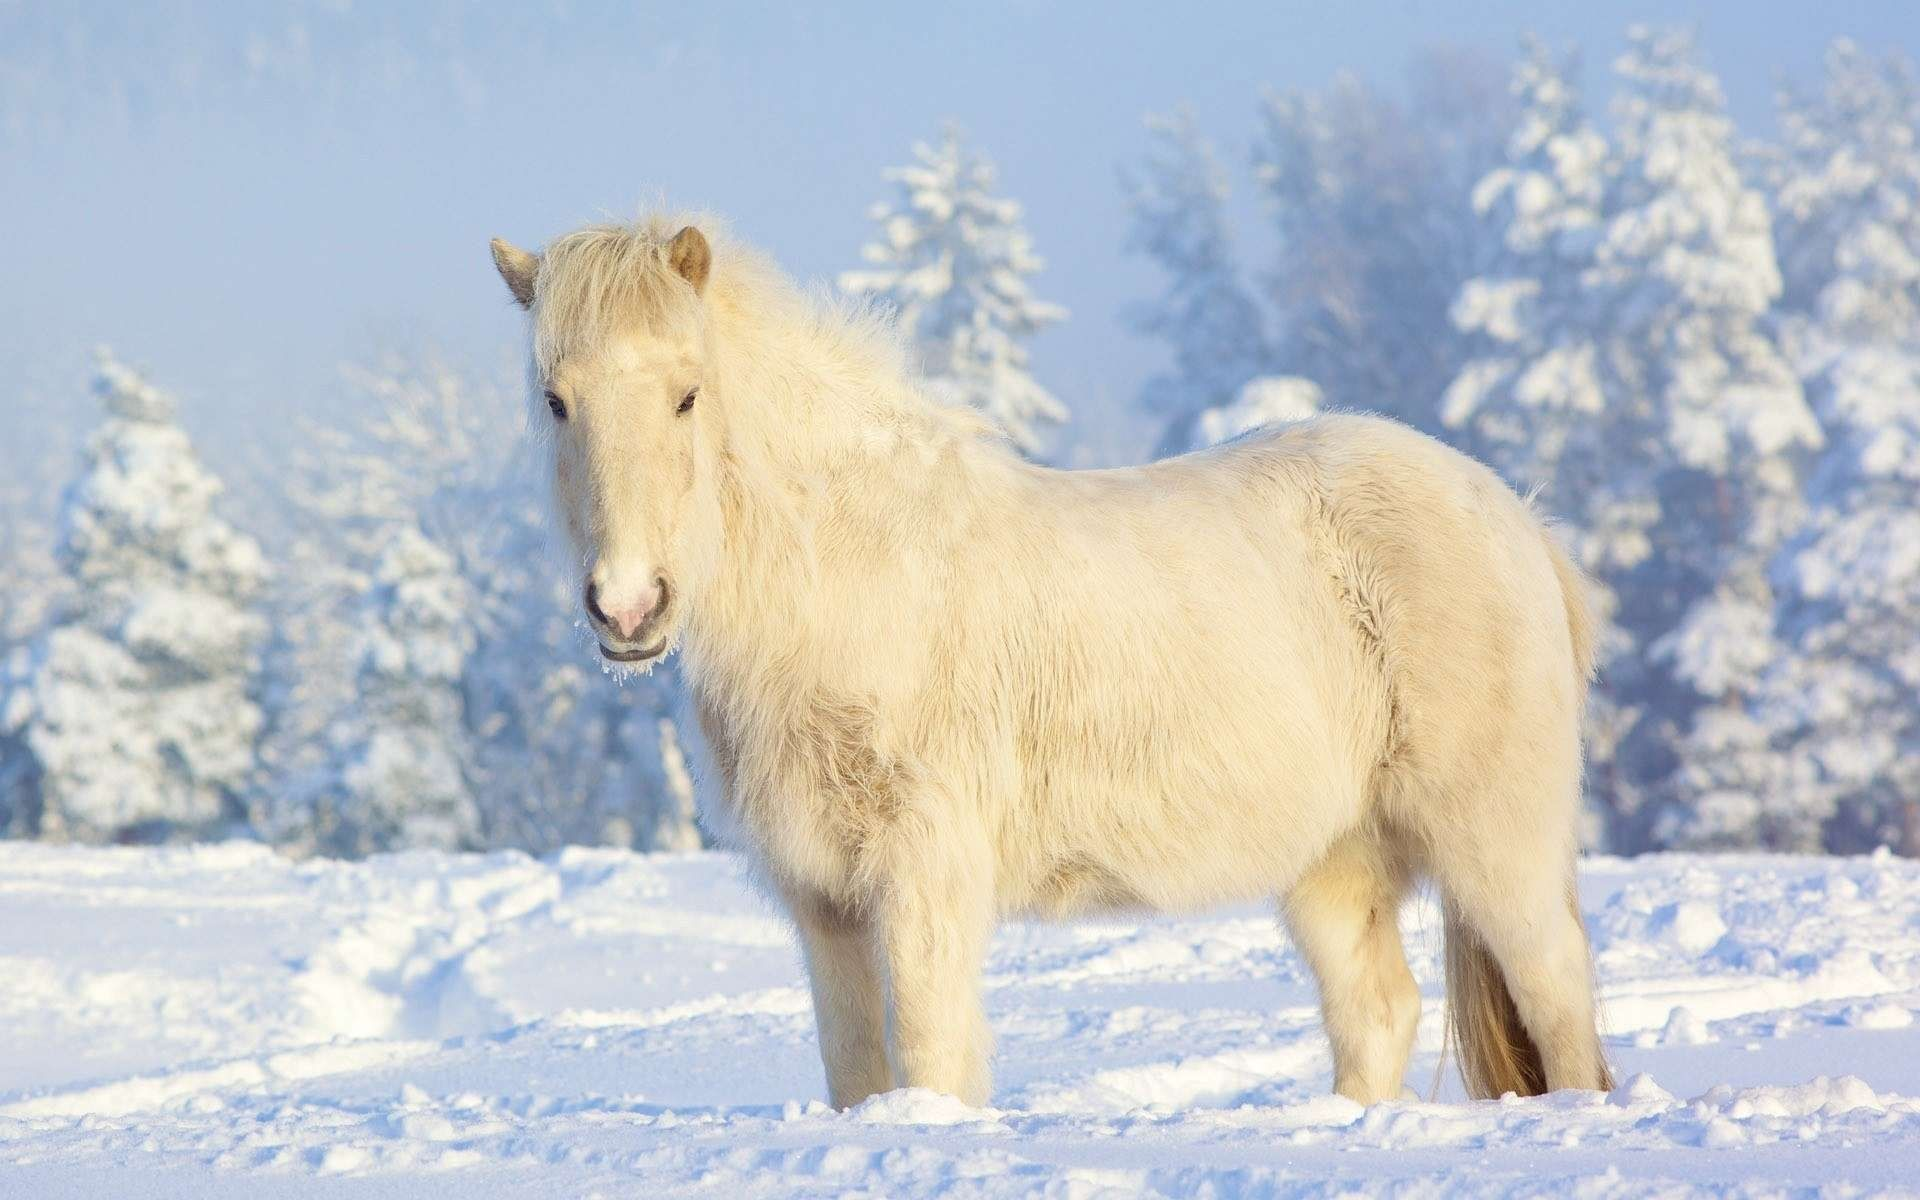 Top Wallpaper Horse Winter - fa6590e1a2f0eef186c21413fb6447ef  Graphic_394274.jpg